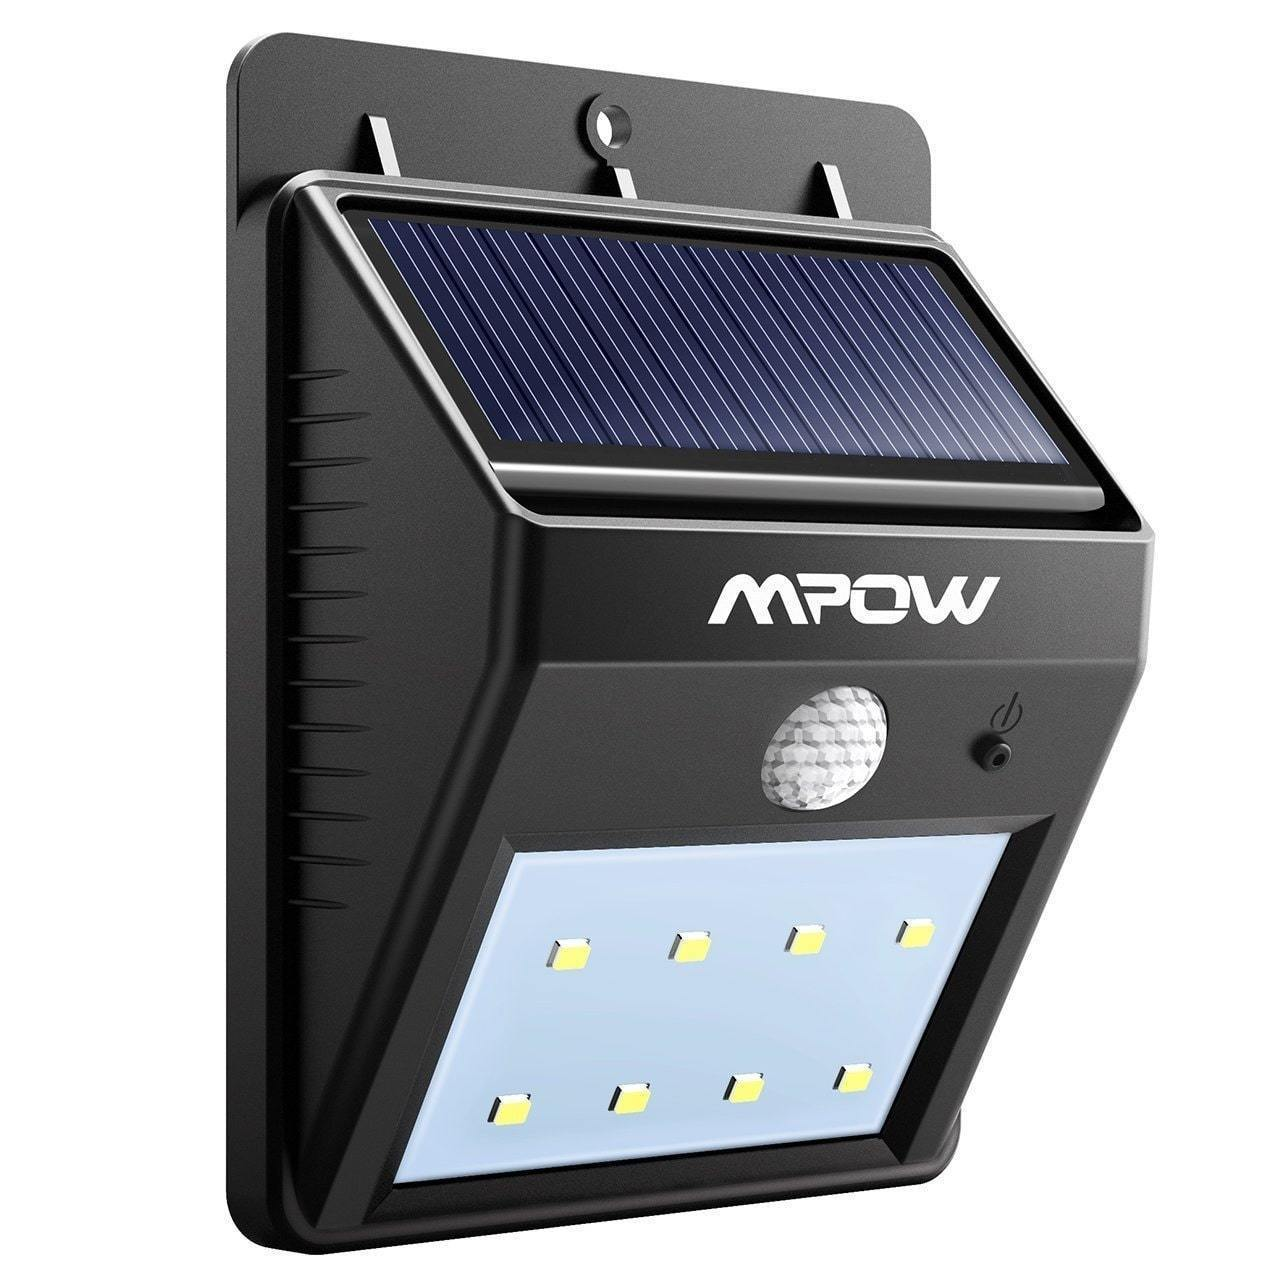 Mpow Solar Powered 8 LED Wireless Security Motion Sensor ...